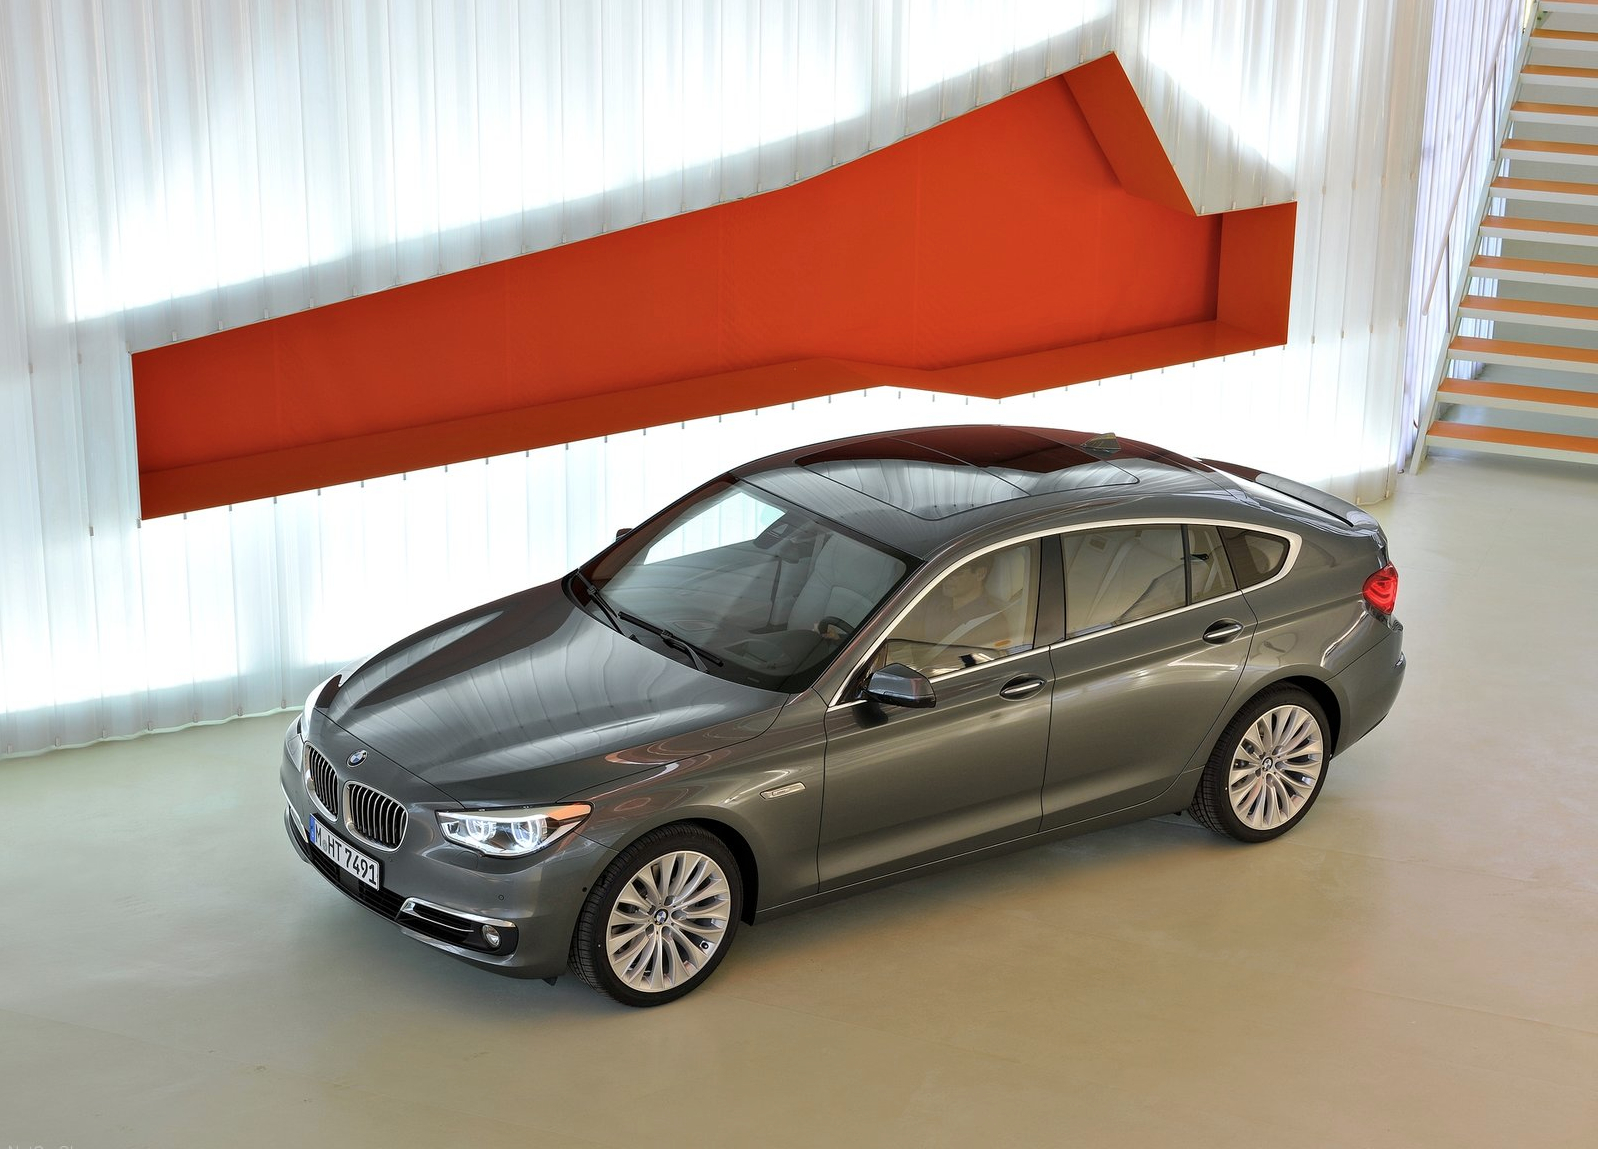 Bmw Announces Changes For 2015 Model Year Models In The Us